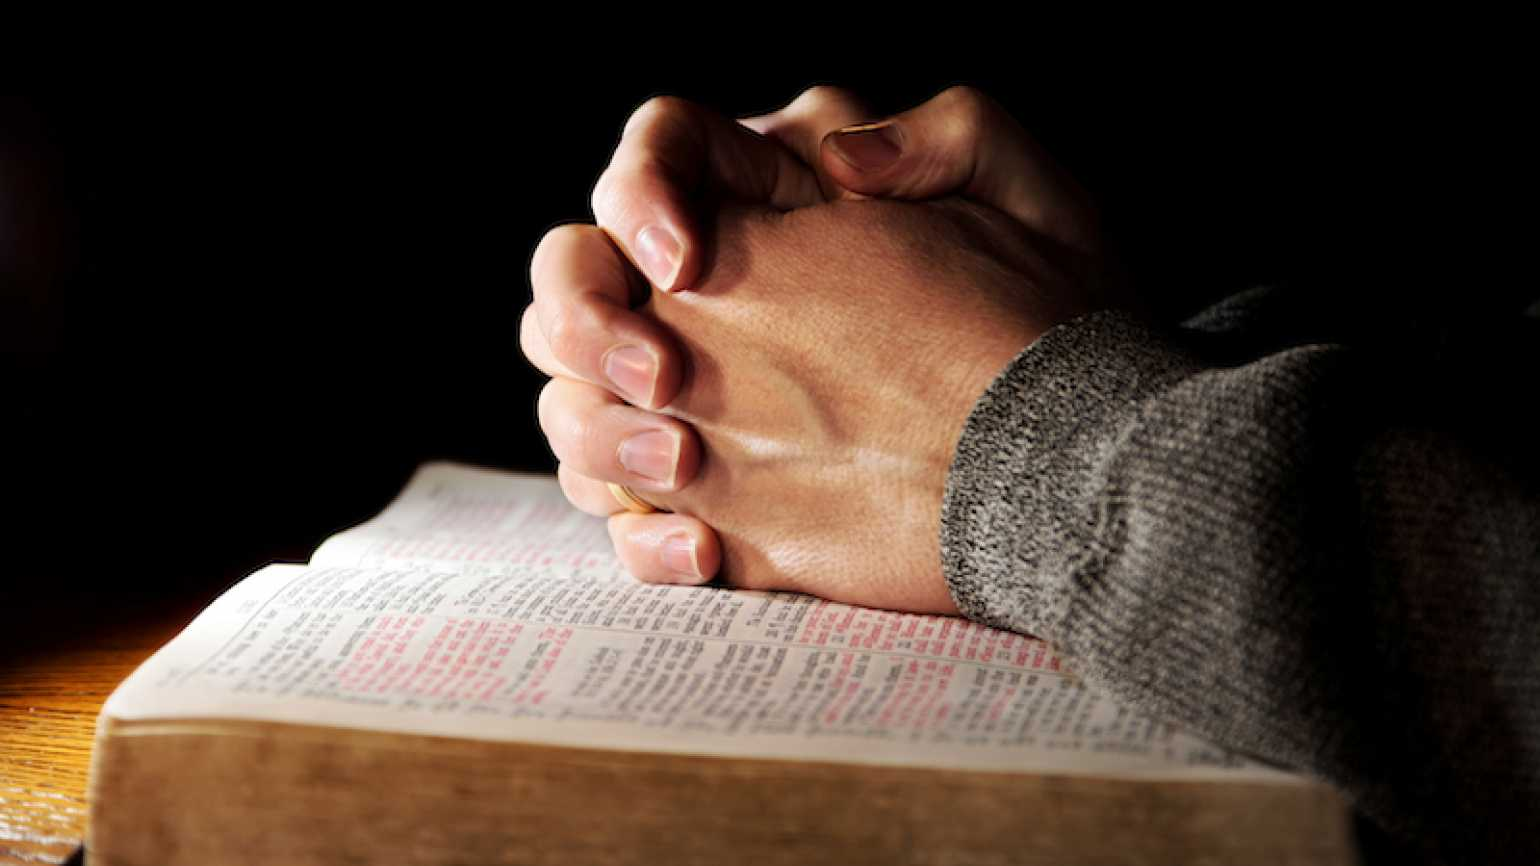 Photo of praying hands by Lincoln Rogers for Thinkstock, Getty Images